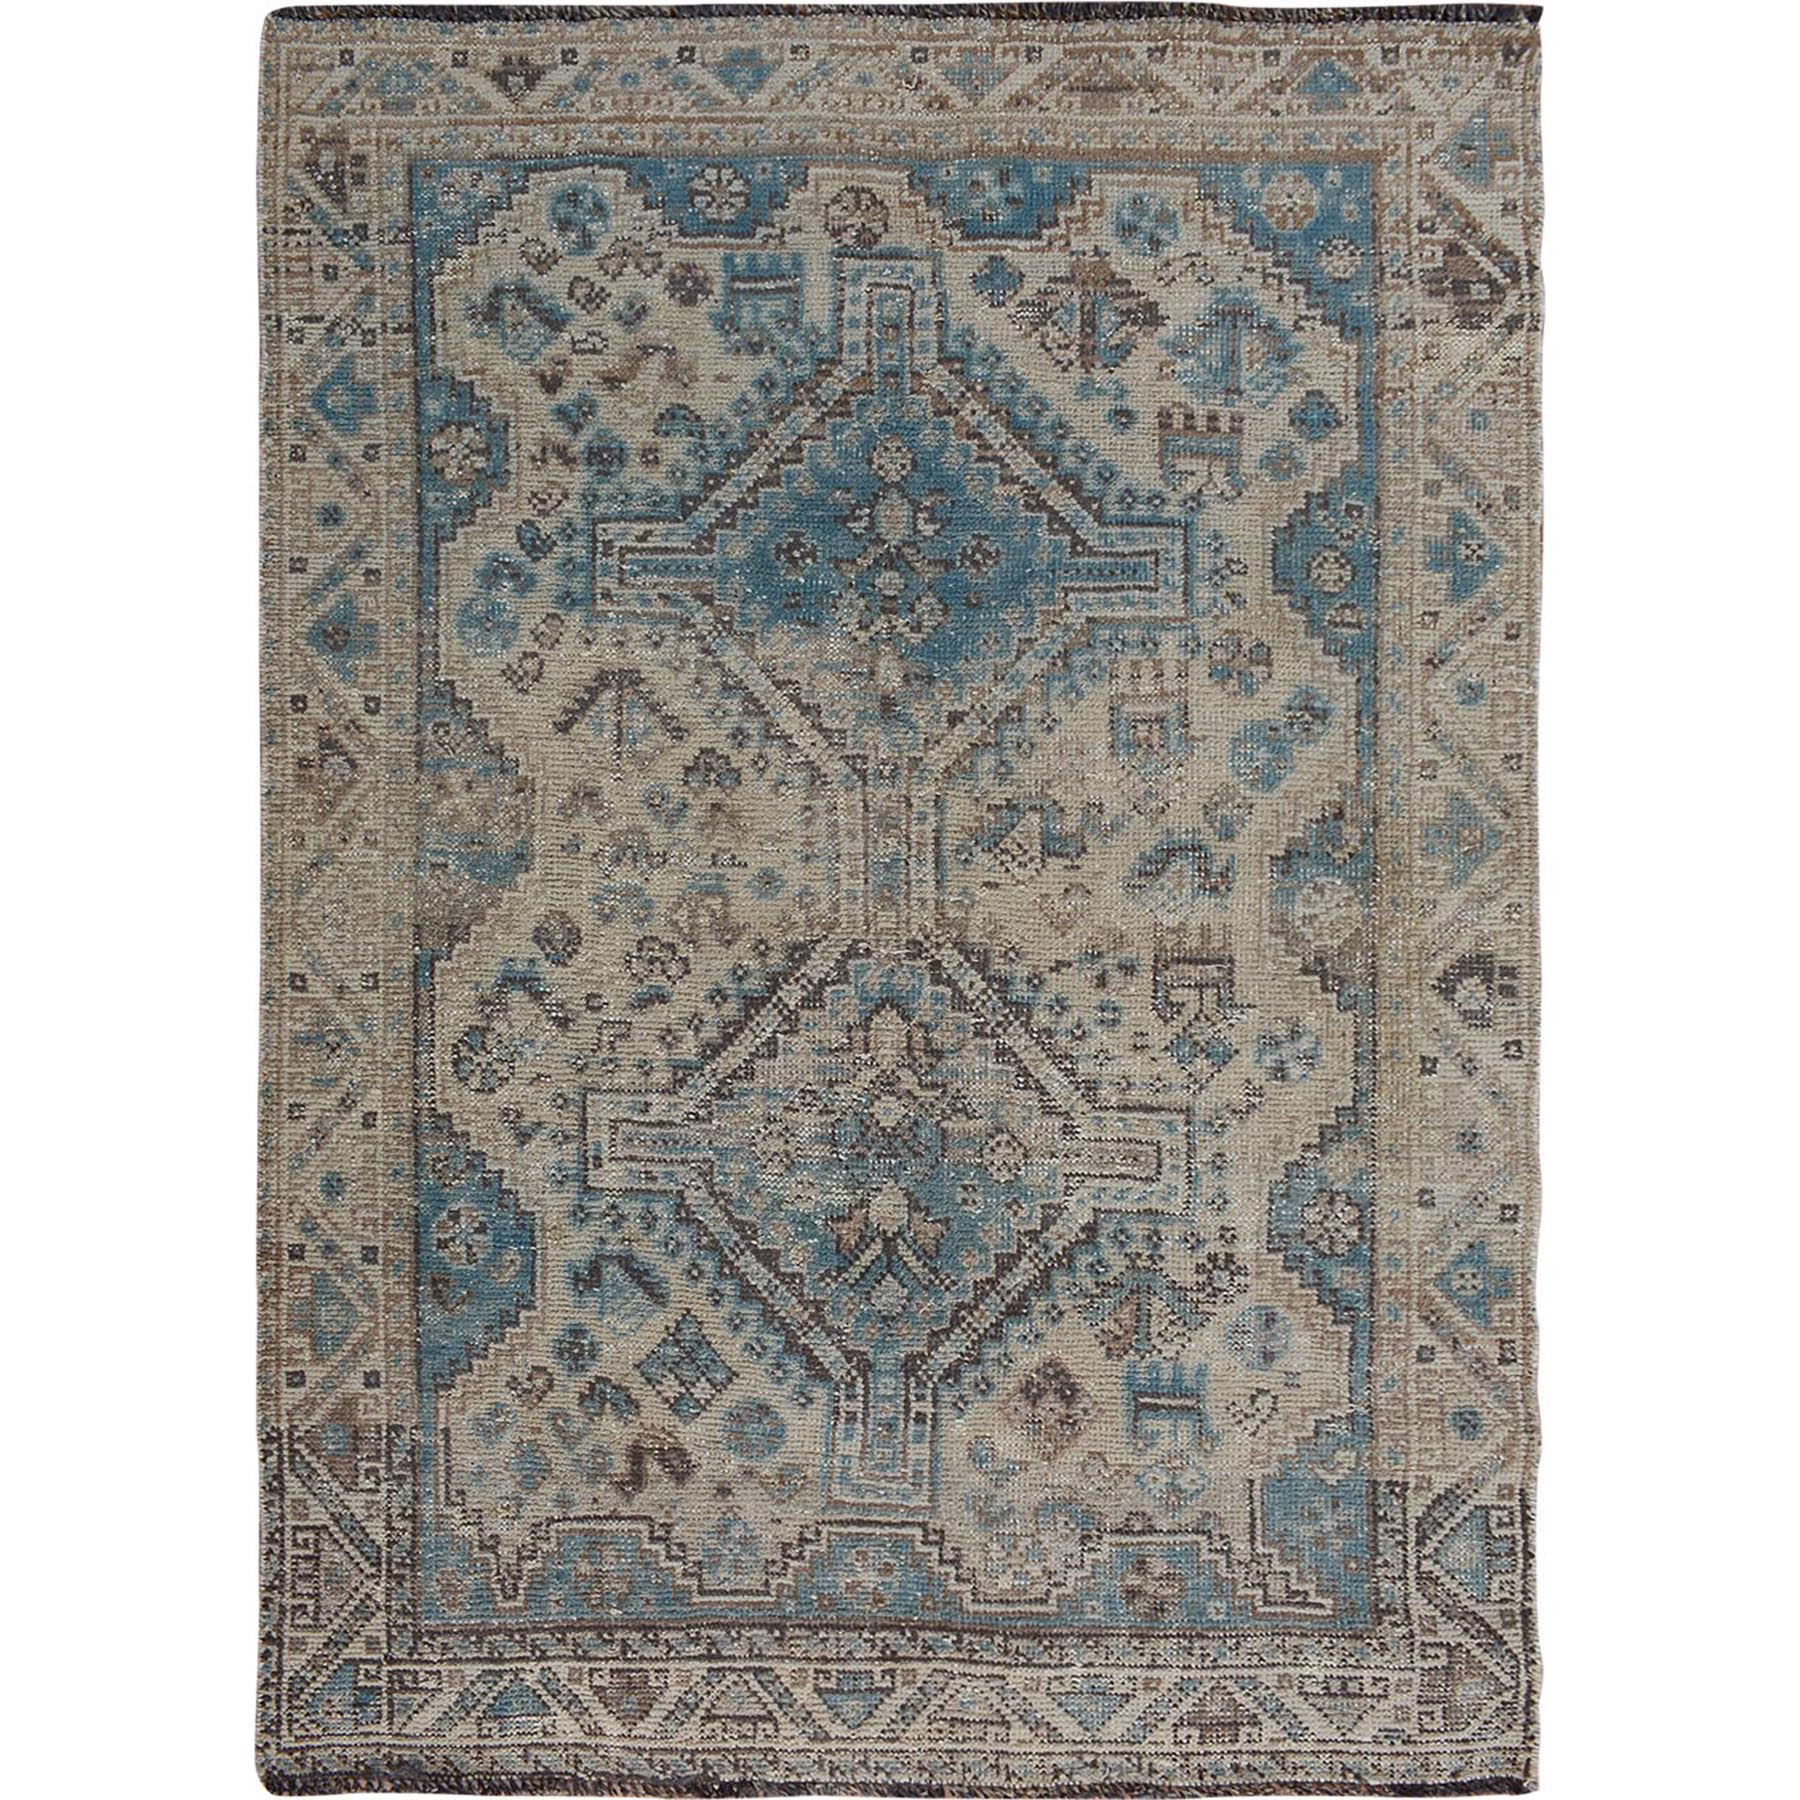 "4'7""x6'1"" Natural Colors Worn Down Vintage Persian Shiraz  Pure Wool Hand Woven Oriental Rug"